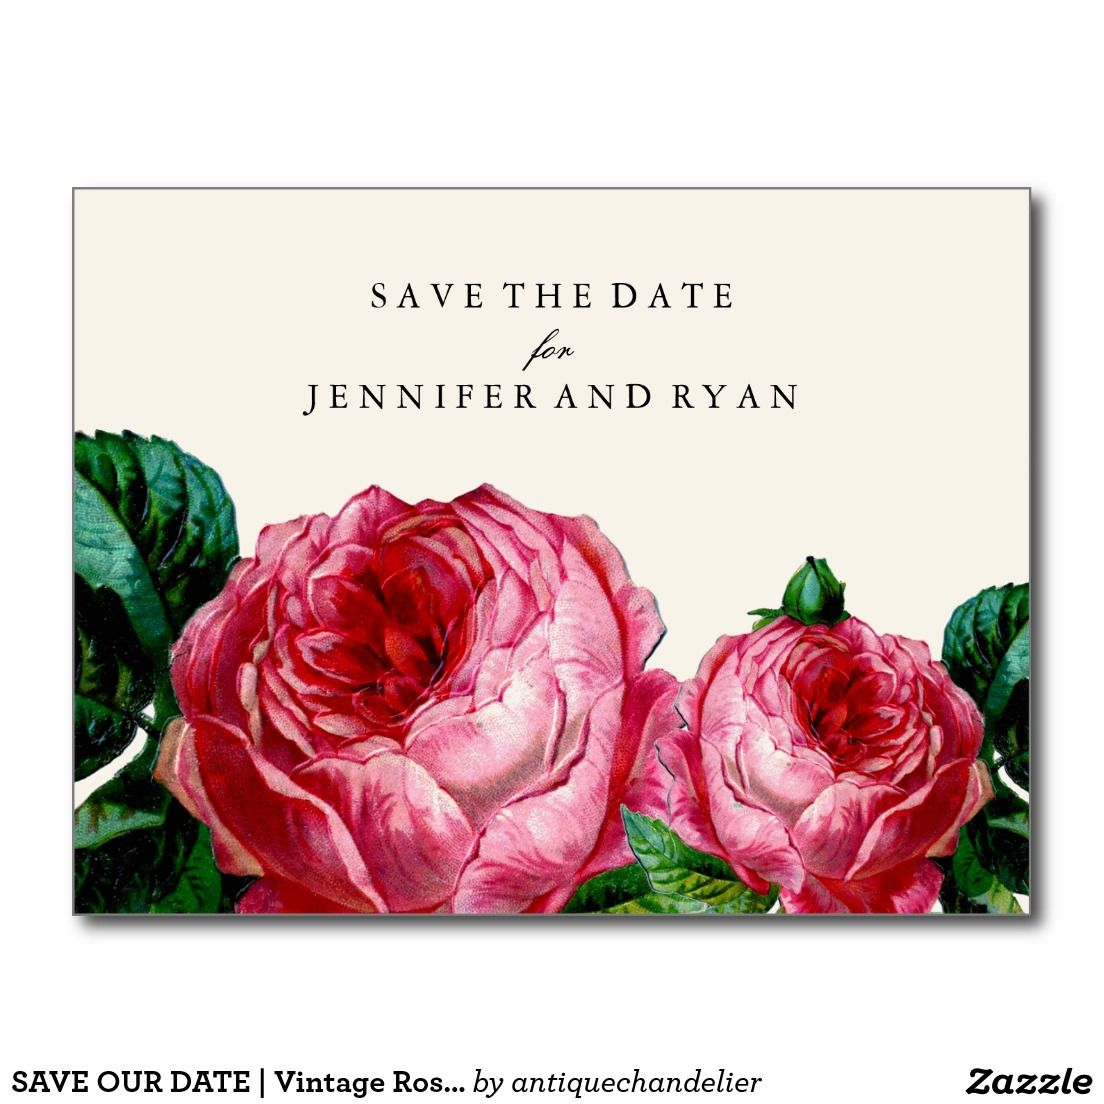 SAVE OUR DATE | Vintage Rose Save the Date Postcard | Weddings